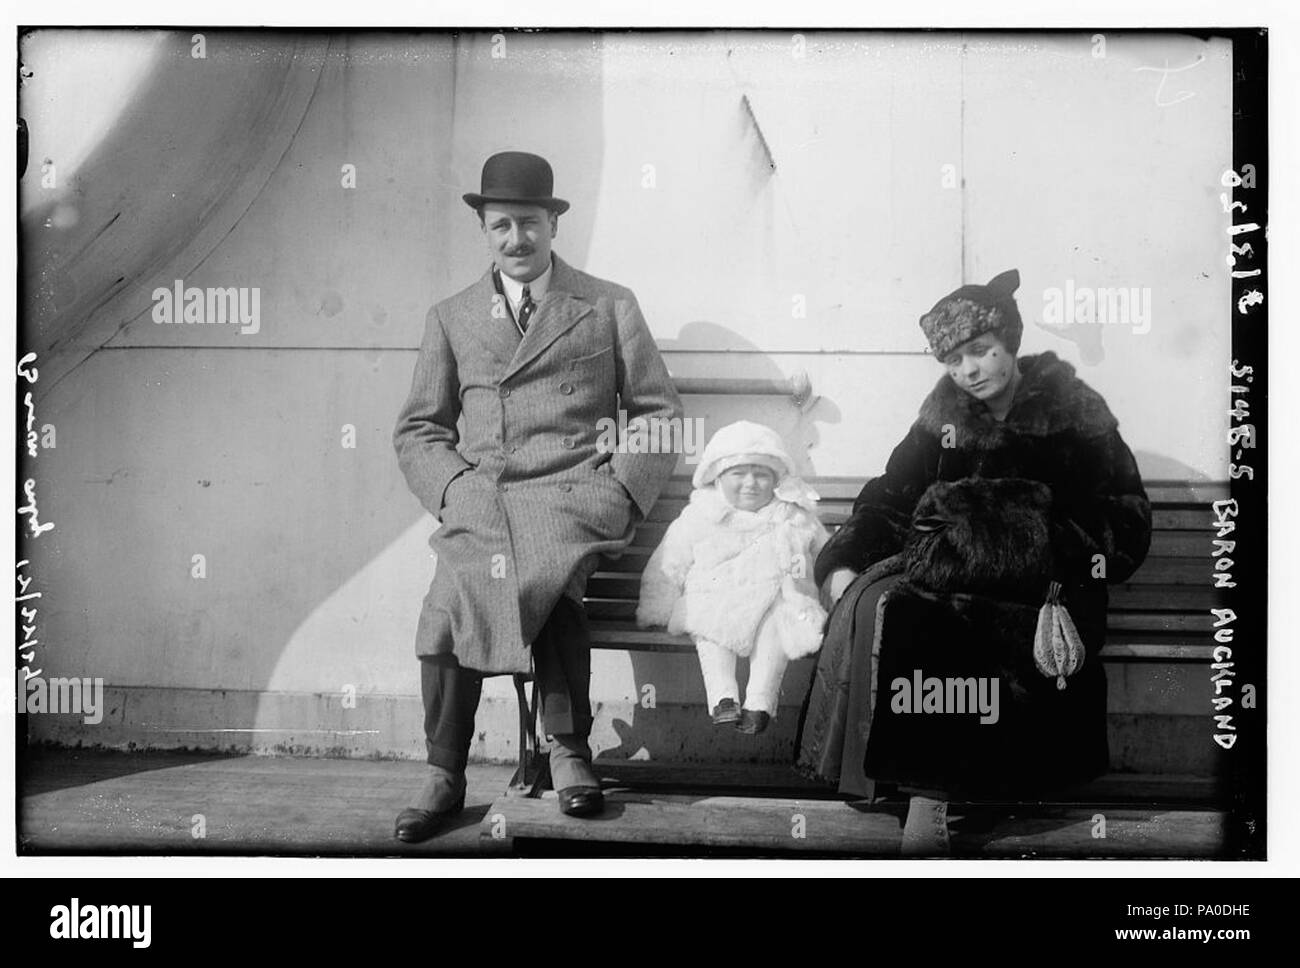 673 Frederick Colvin George Eden, 6th Baron Auckland on March 2, 1920 - Stock Image